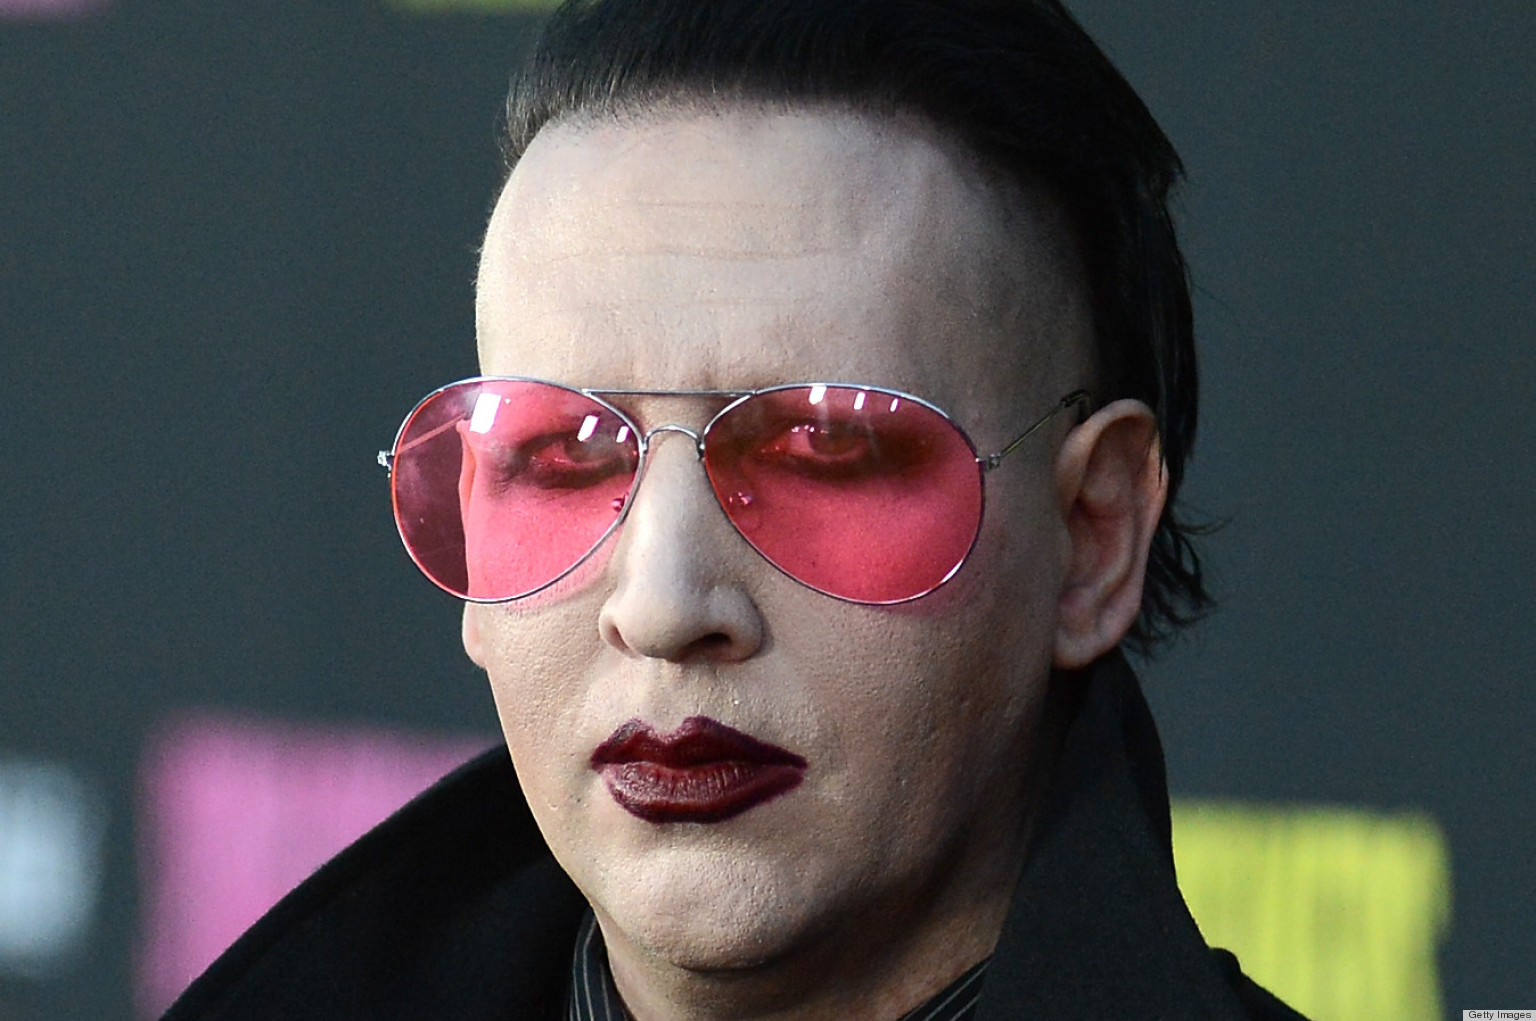 Marilyn Manson In Saint Laurent Ad Takes Us By Surprise